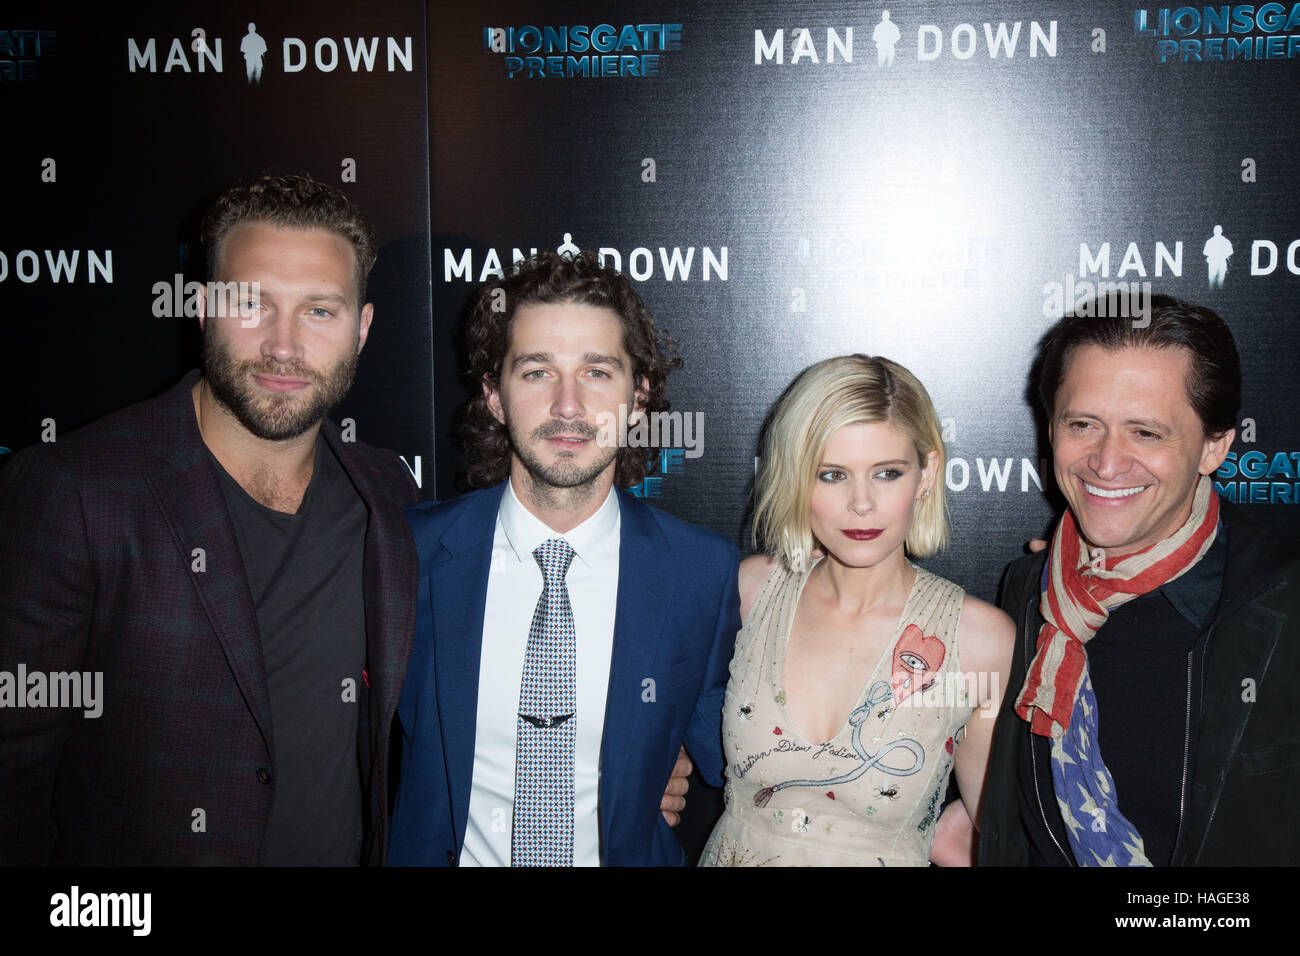 Hollywood, Etats-Unis. 30Th Nov, 2016. Jai Courtney, Shia LaBeouf, Kate Mara, et Clifton Collins Jr. assister à Photo Stock